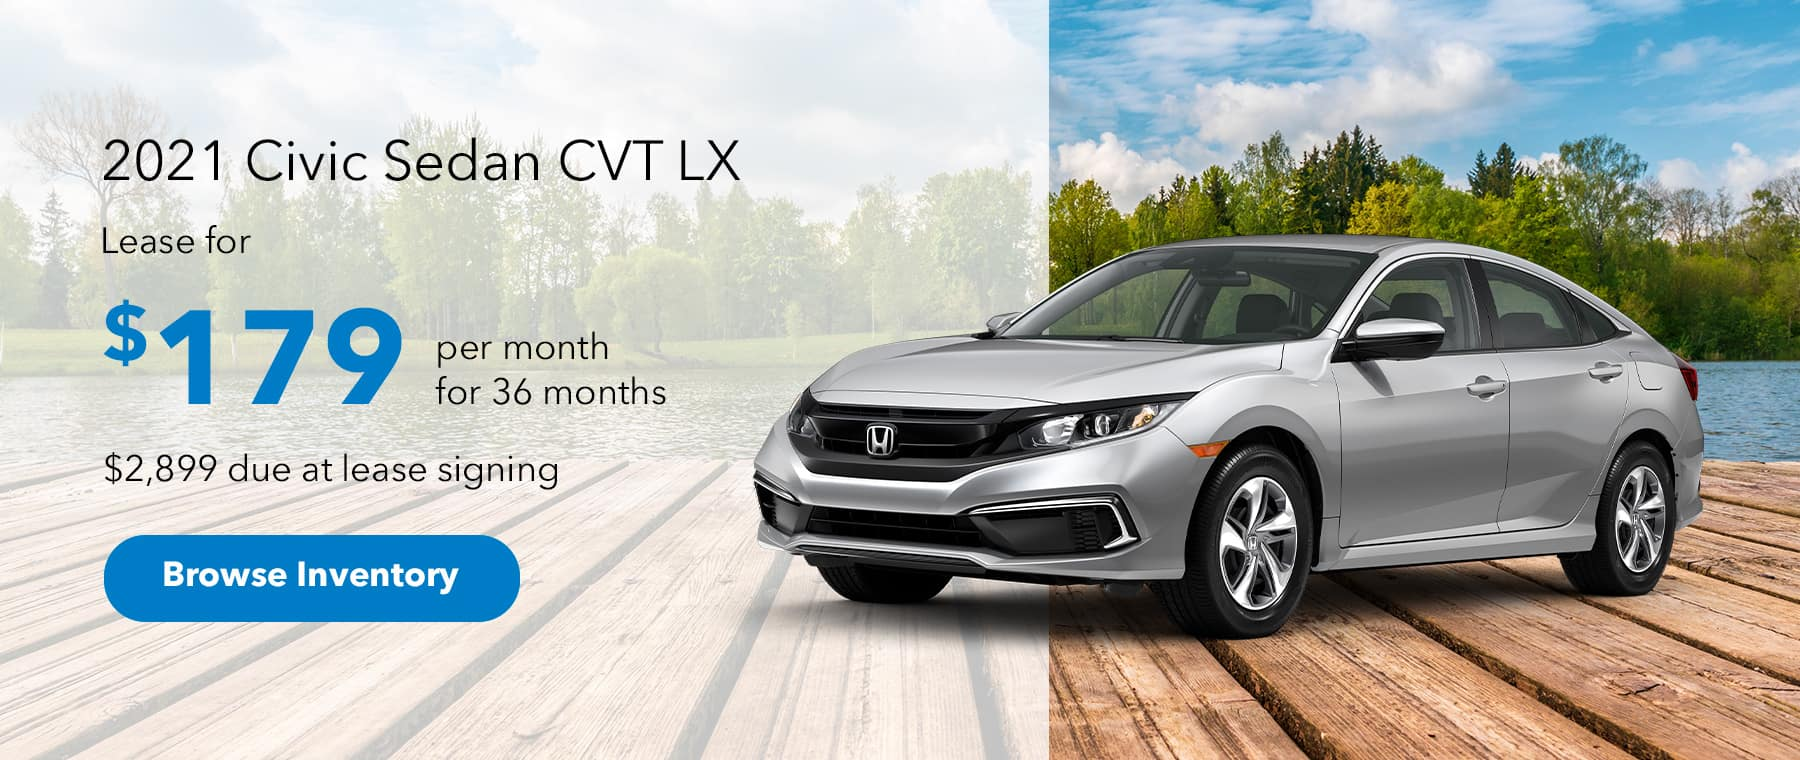 2021 Civic Sedan CVT LX. $179 Per month for 36 months. $2,899 due at lease signing.